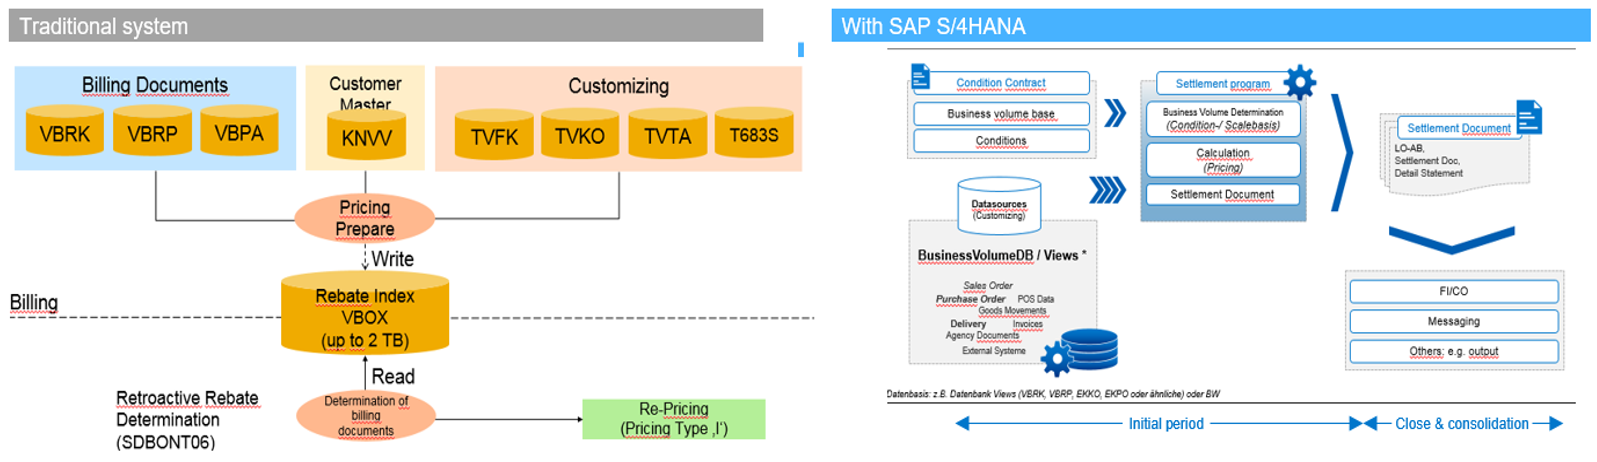 scheduling agreement in sap sd pdf